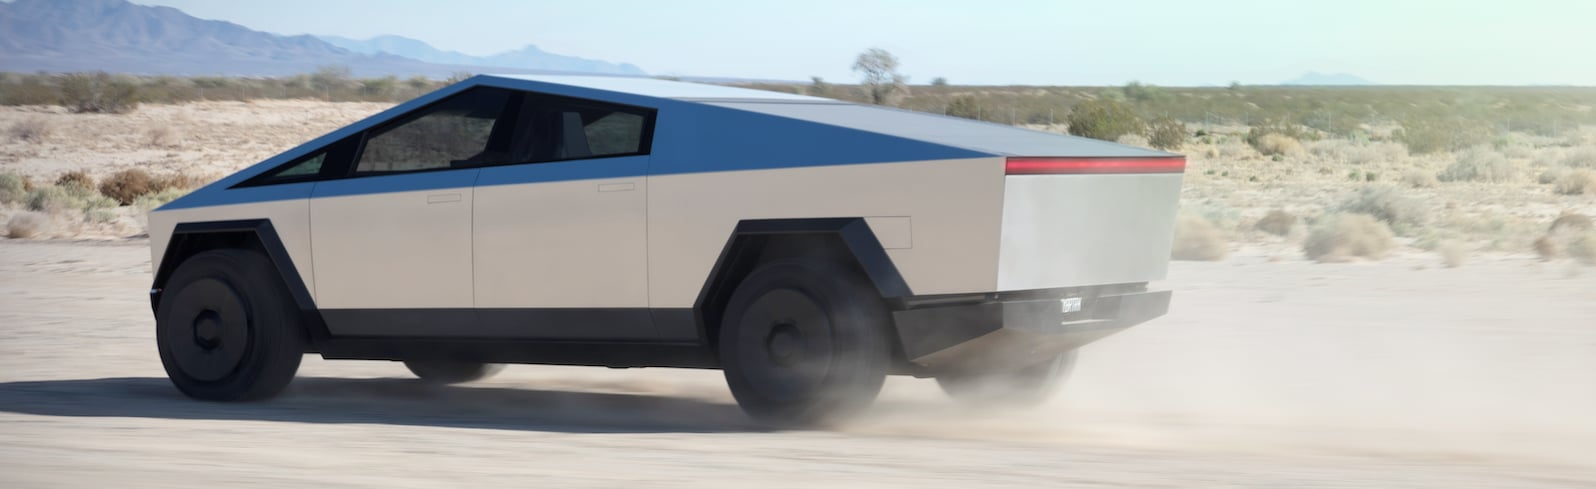 Tesla Cybertruck Rear and Bed,